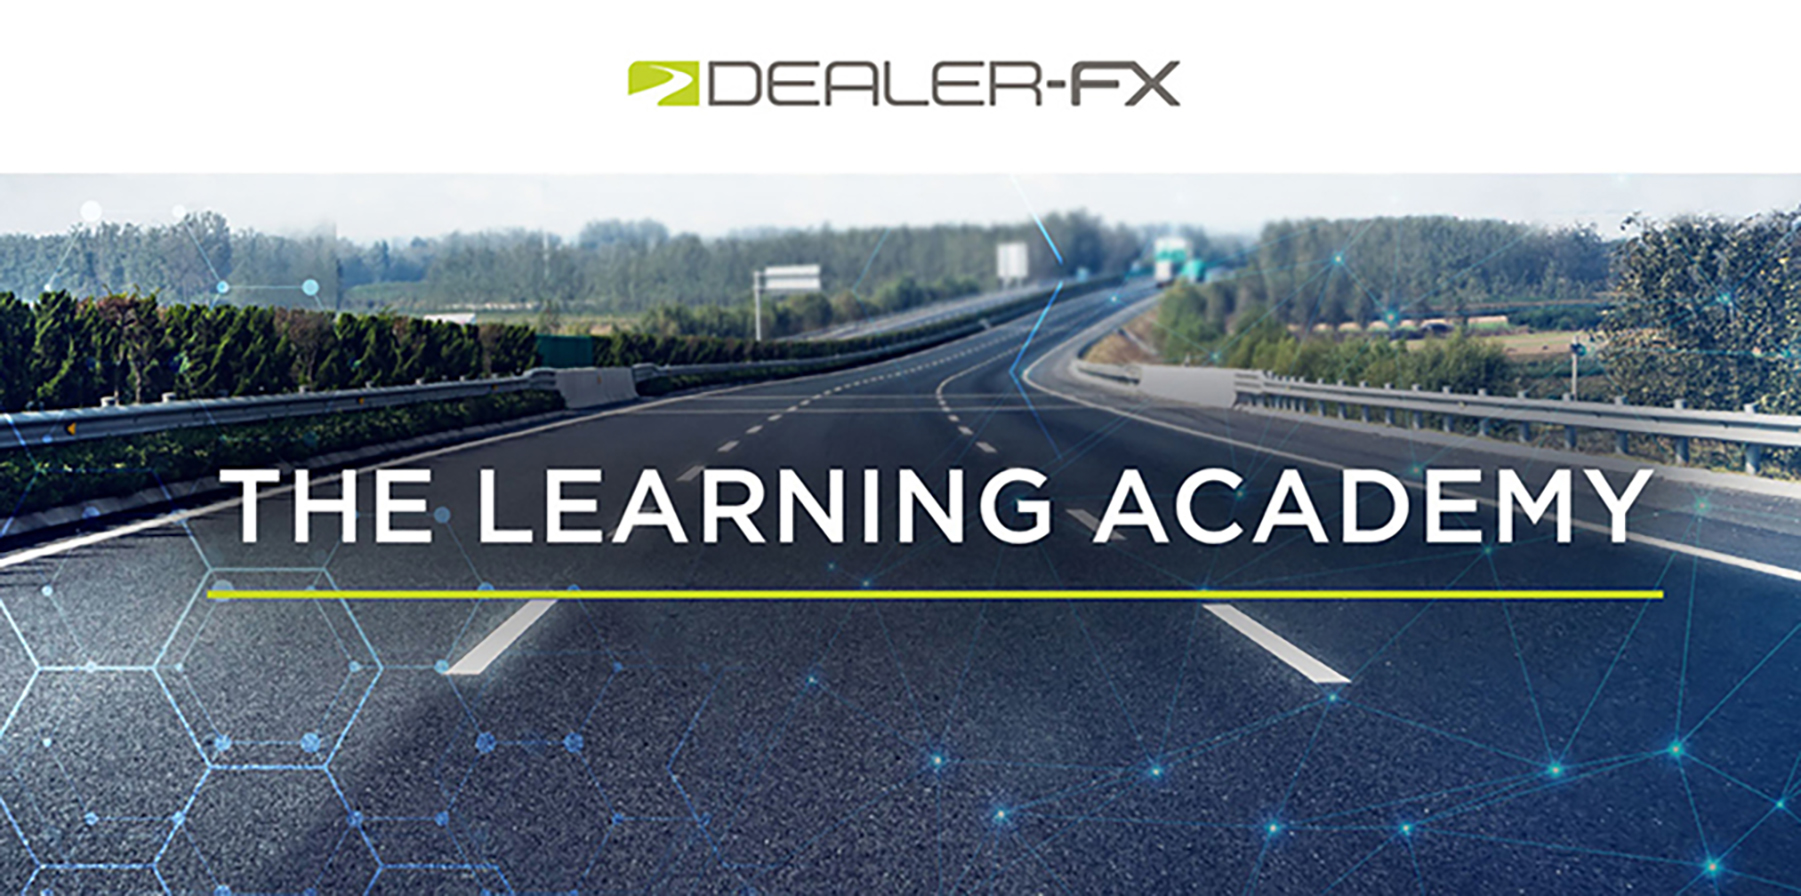 Dealer-FX Learning Academy